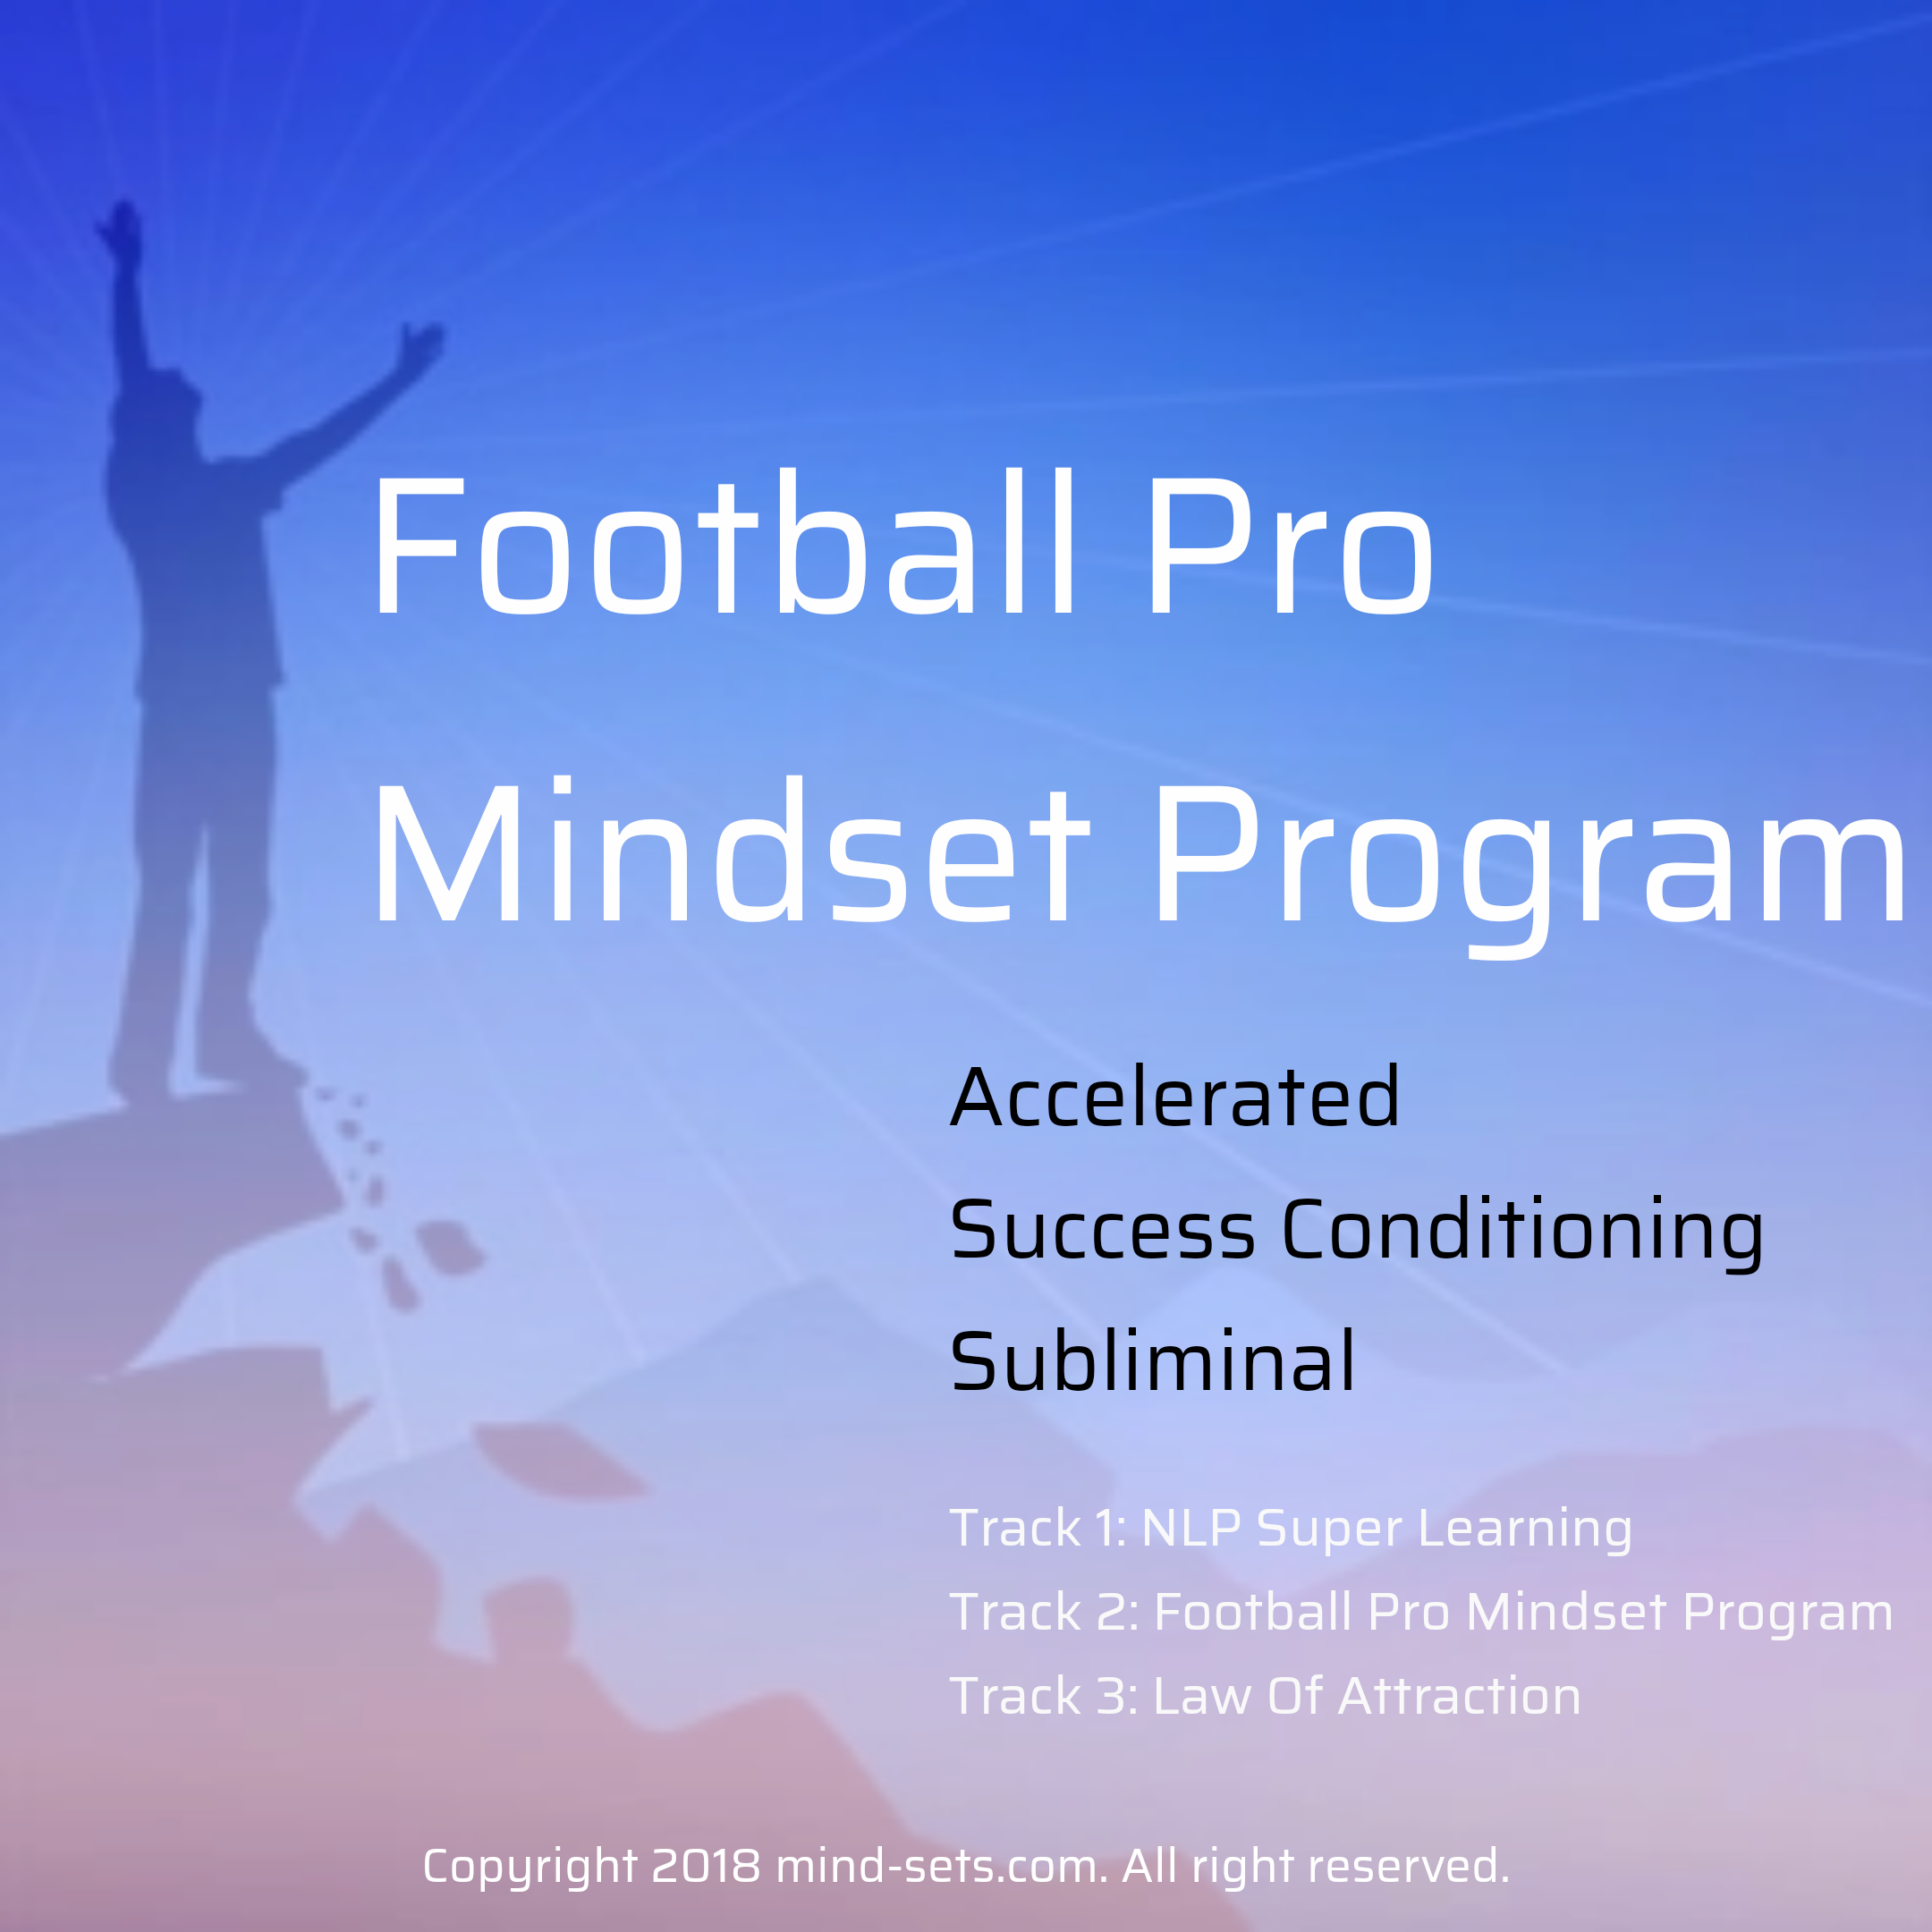 Football Pro Mindset Program